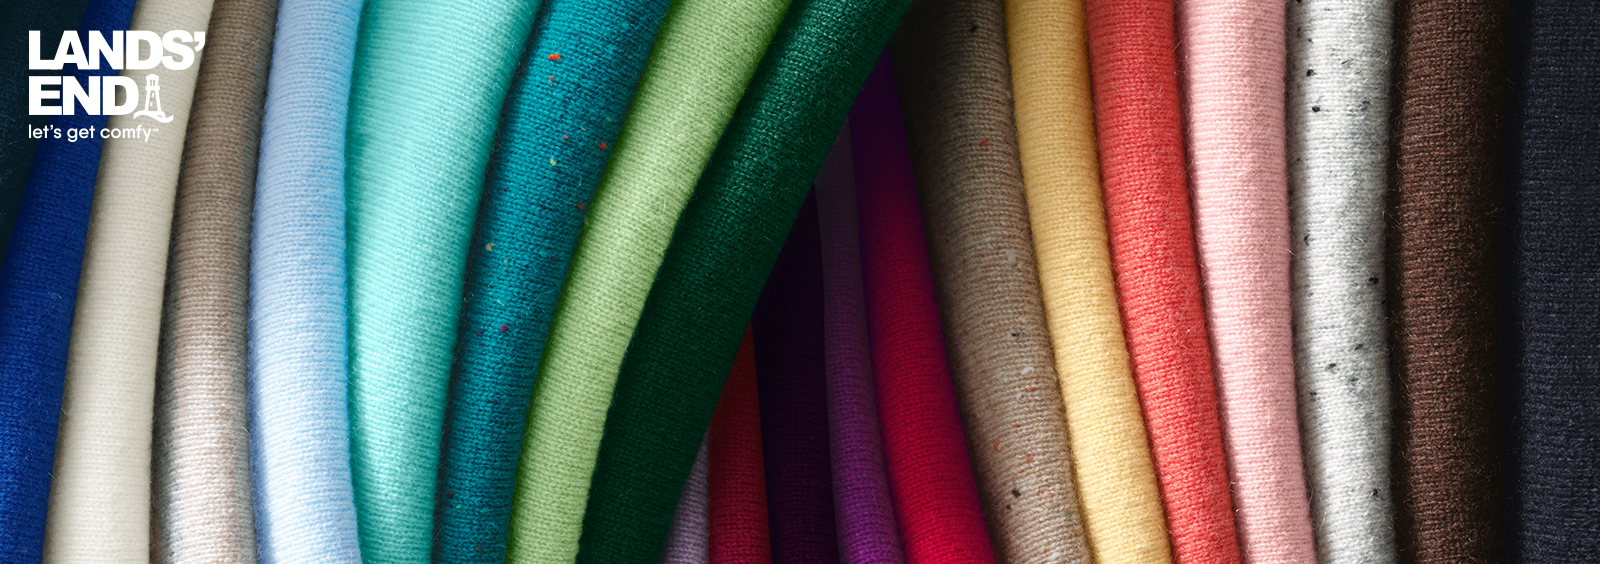 What Are My Colors? How to Find the Best Colors for You